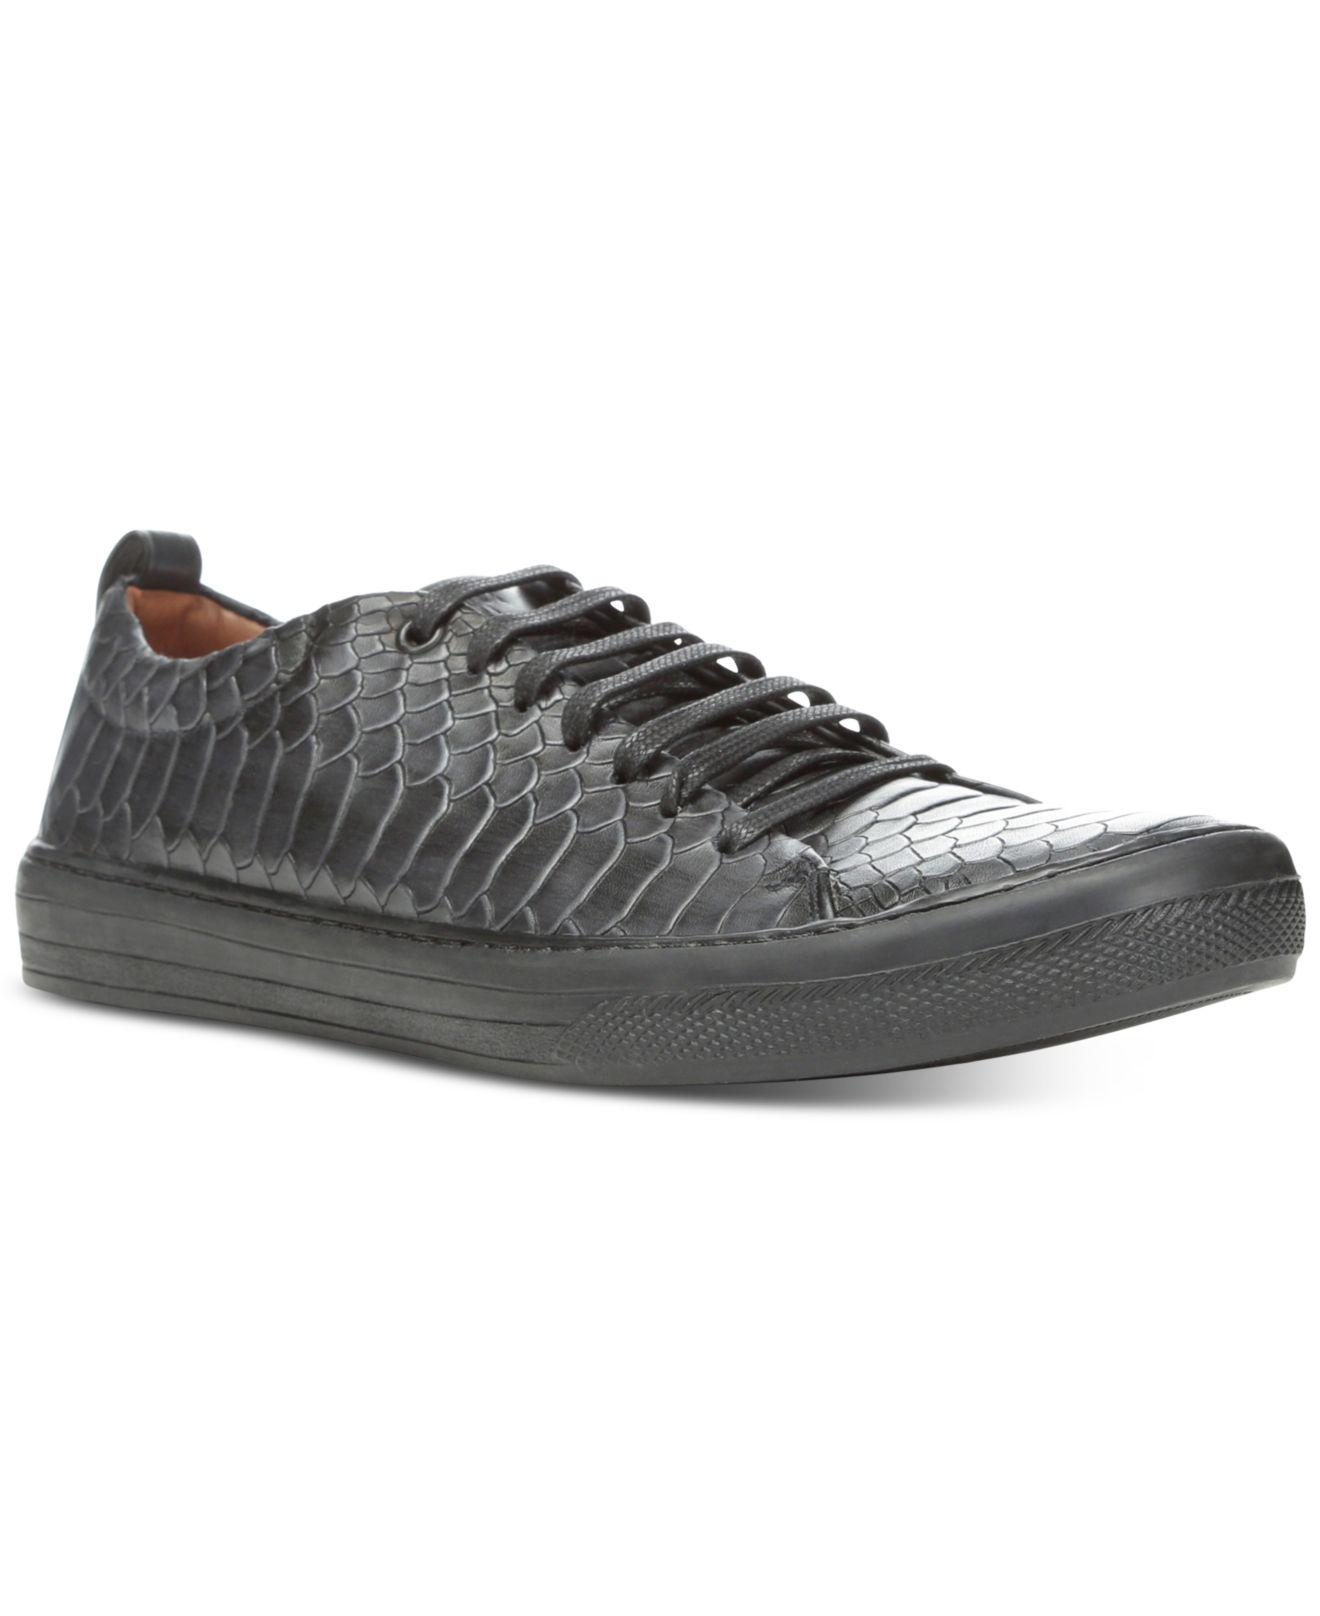 Donald J Pliner. Blue Men's Rand Vintage Python Sneakers